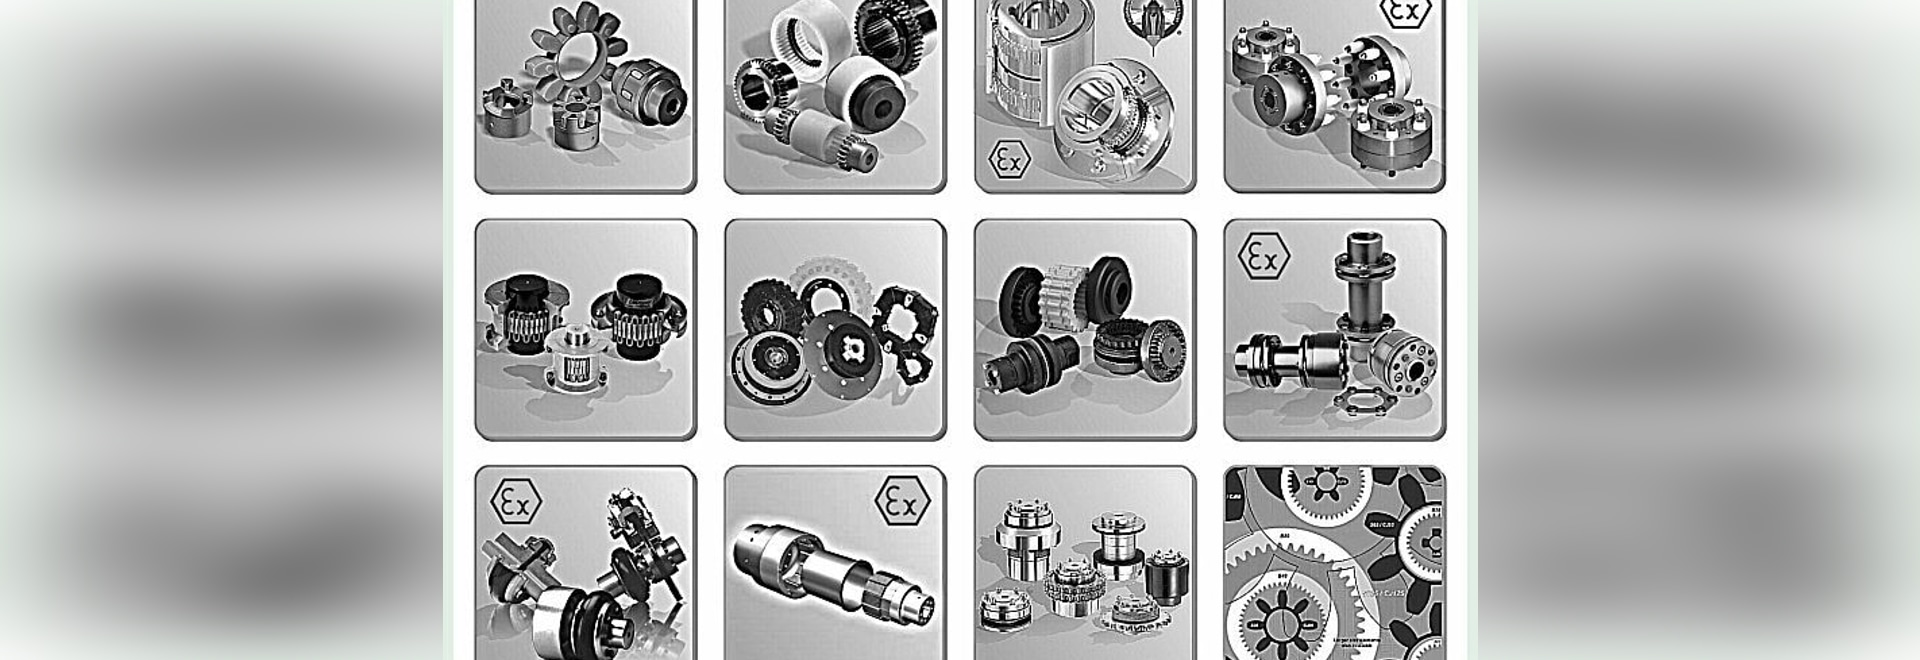 Couplings for mechanical power transmission